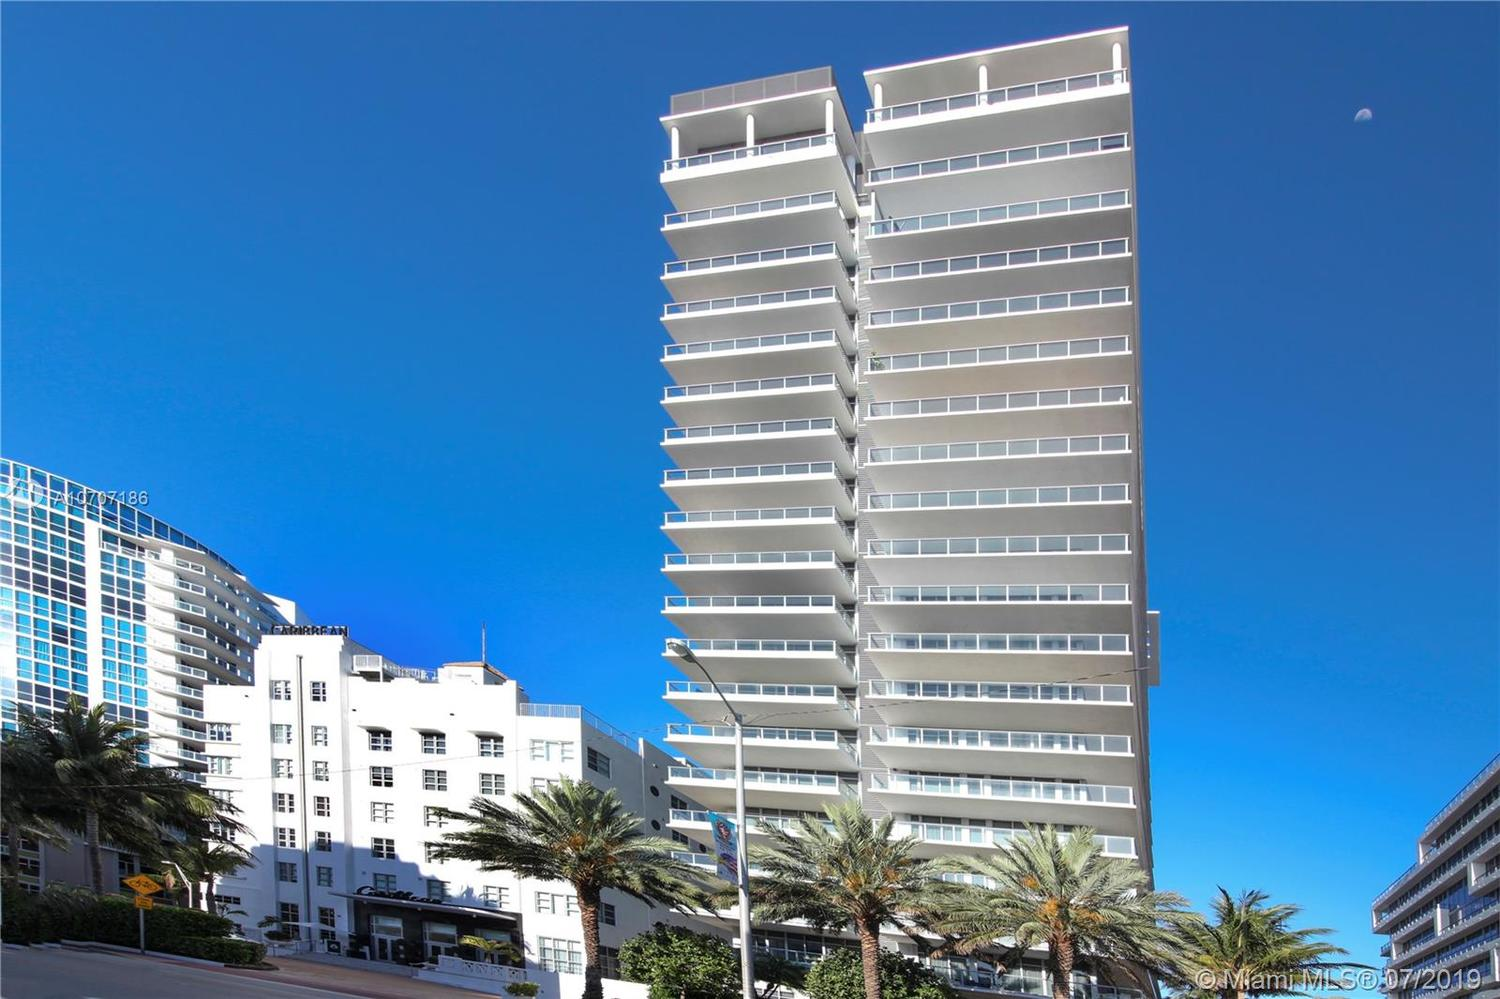 3737 Collins Avenue, Unit S-604 Miami Beach, FL 33140